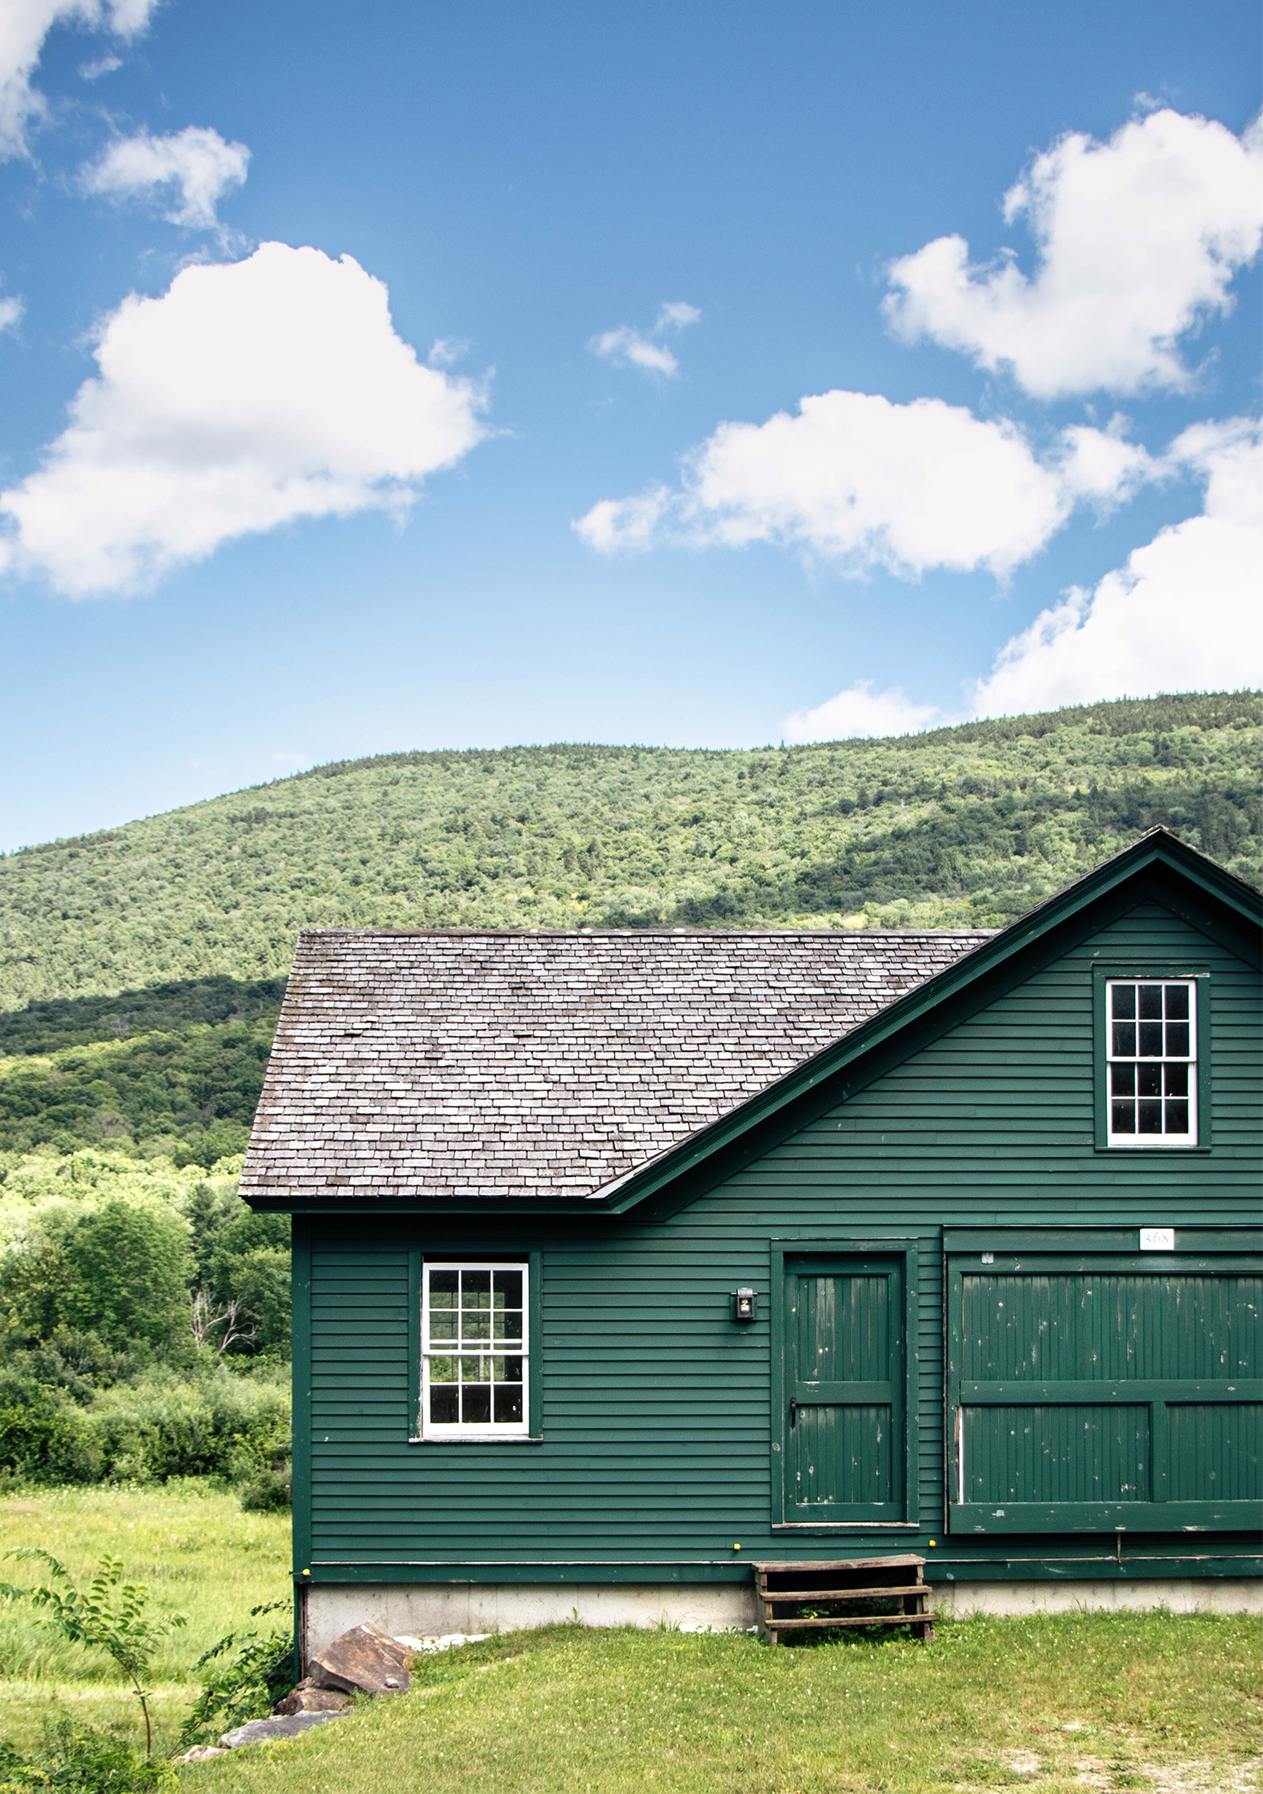 SCENES of NEW ENGLAND - (currently: Barnes' Barns, warmer weather edition)